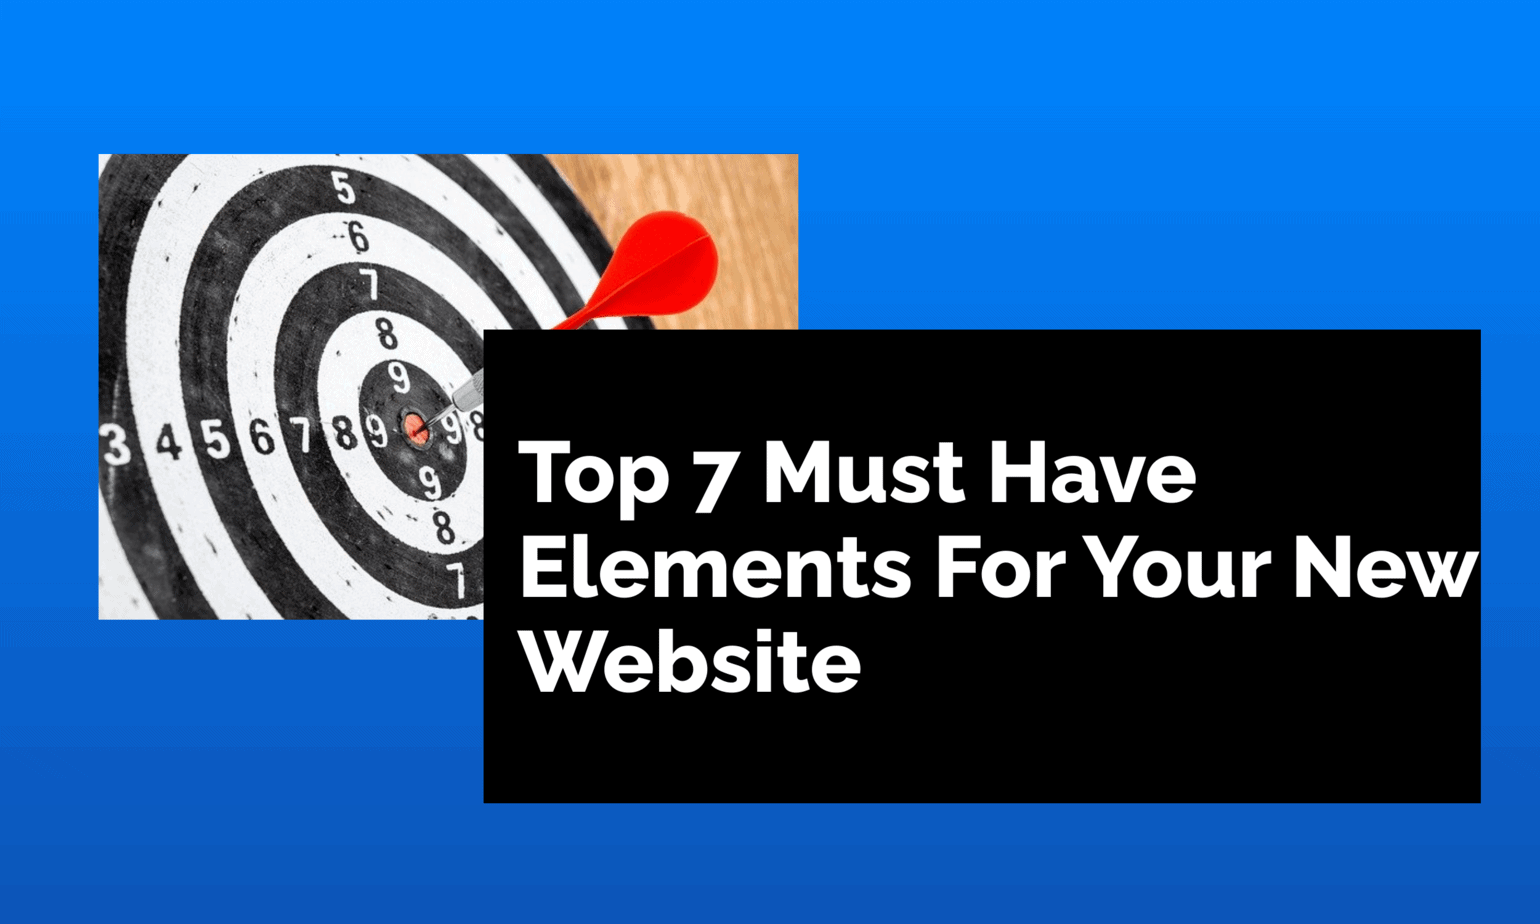 Top-7-Elements-For-Your-New-Website